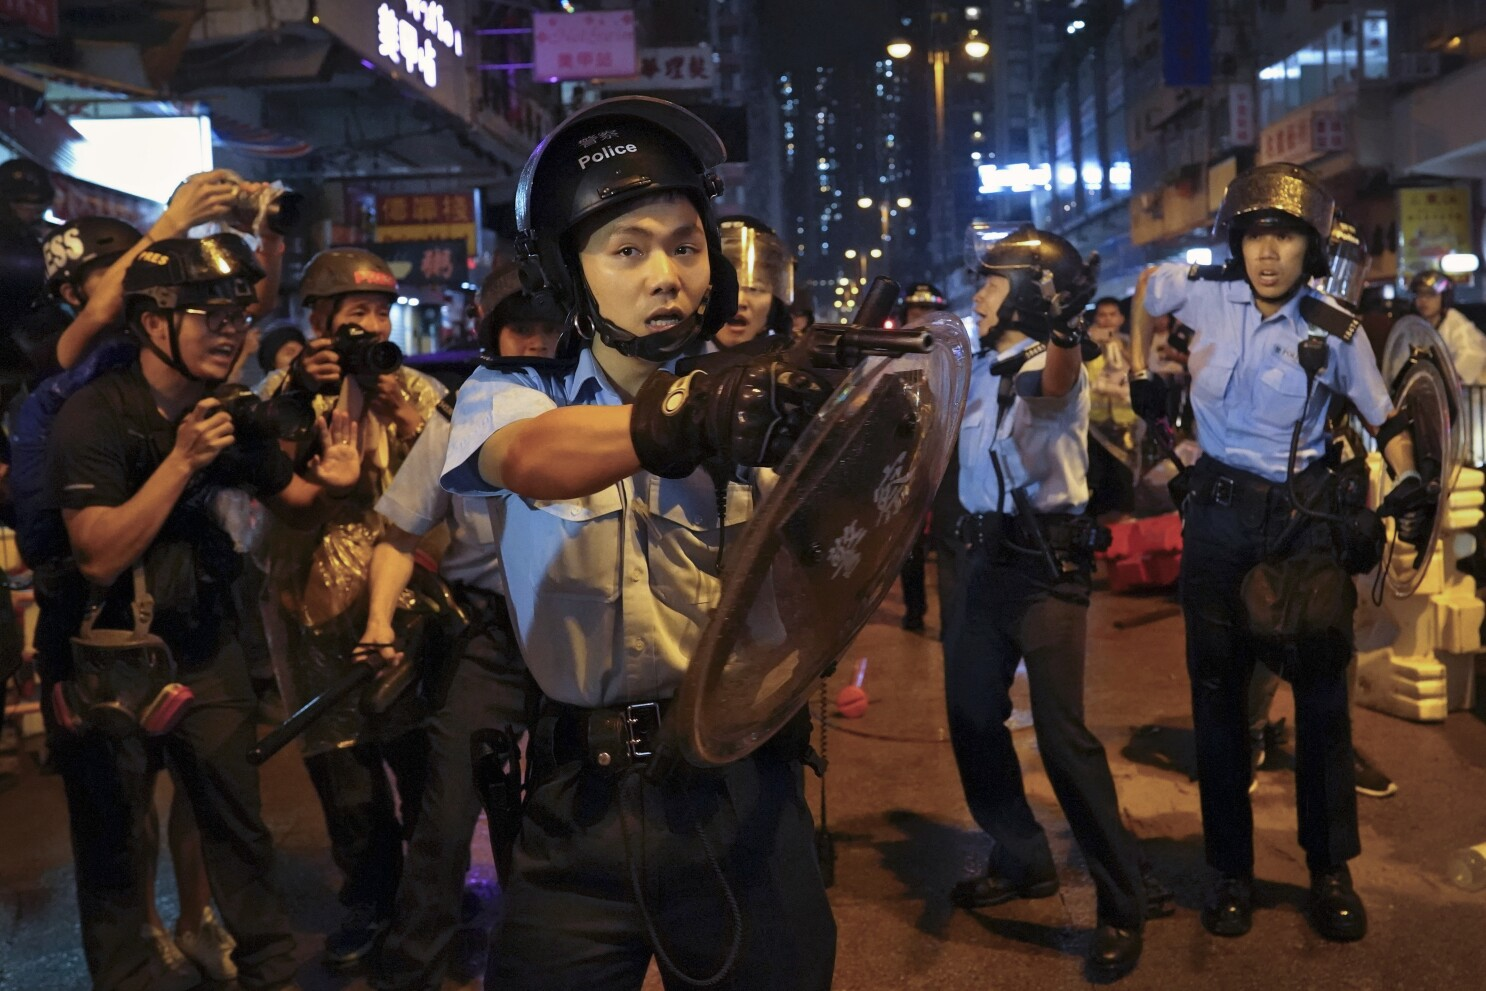 Hong Kong protests: Police draw guns and bring out water cannons